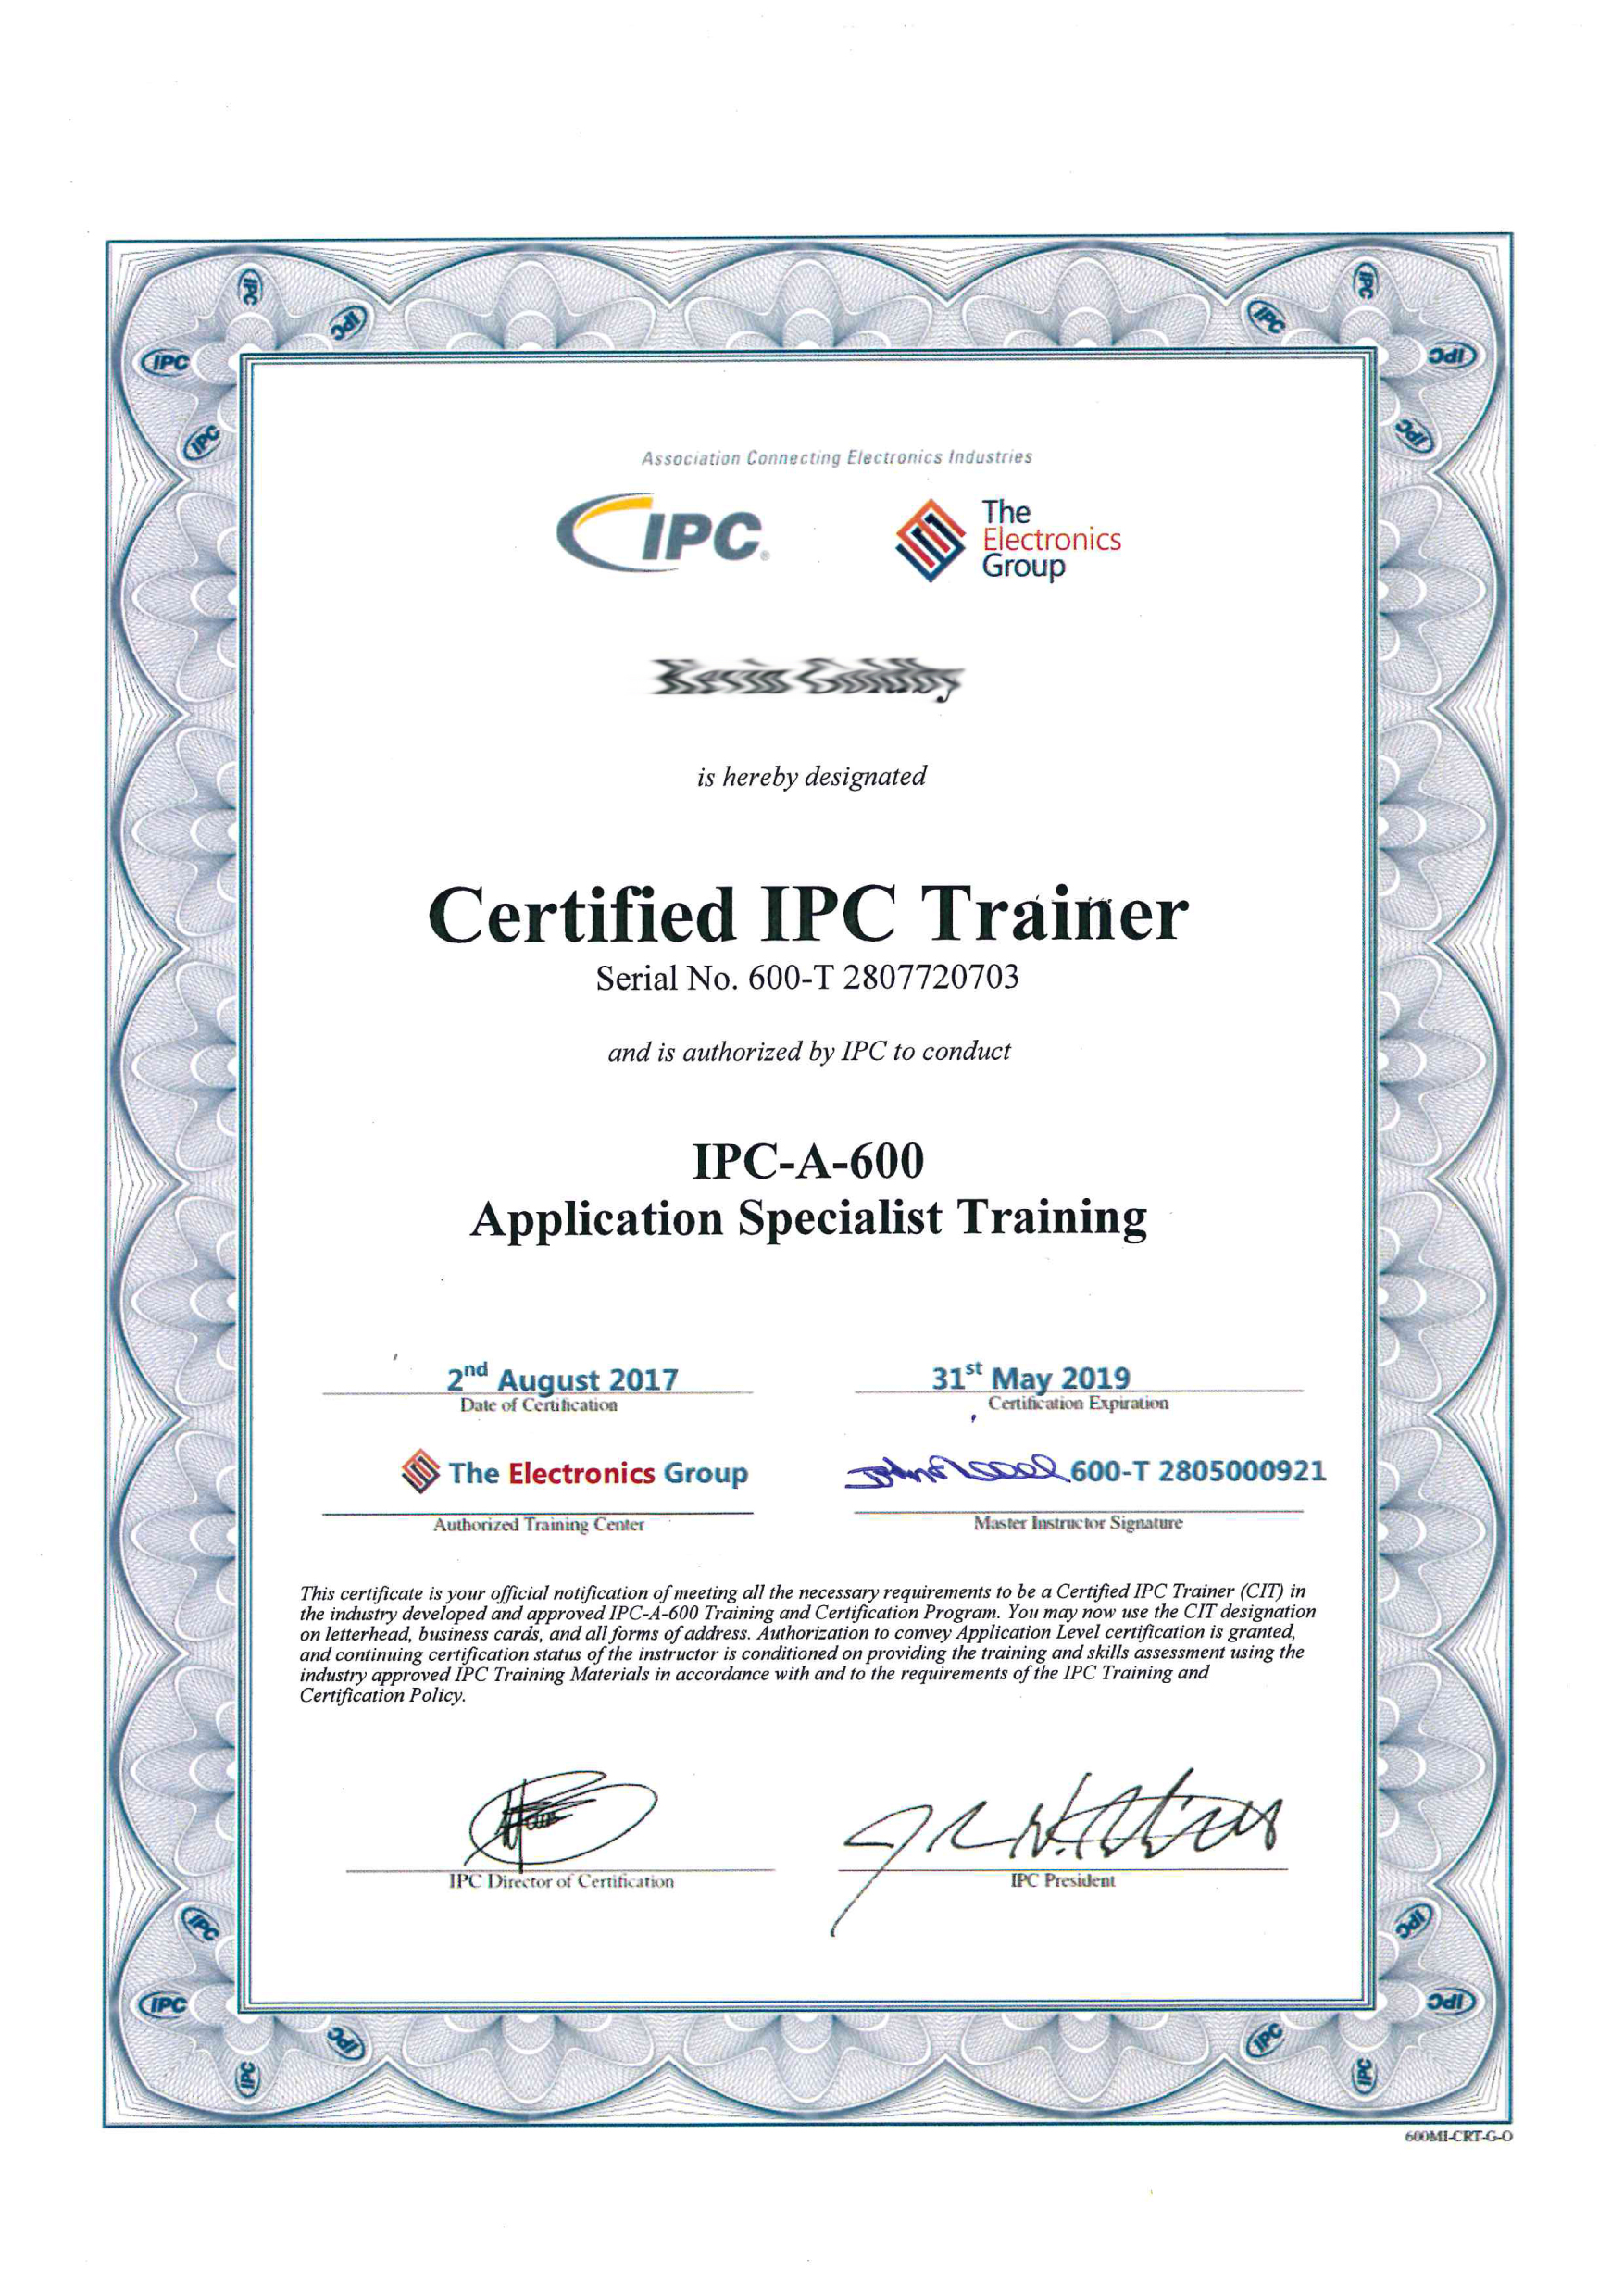 Cleveland Circuits Ipc A 600 Certification